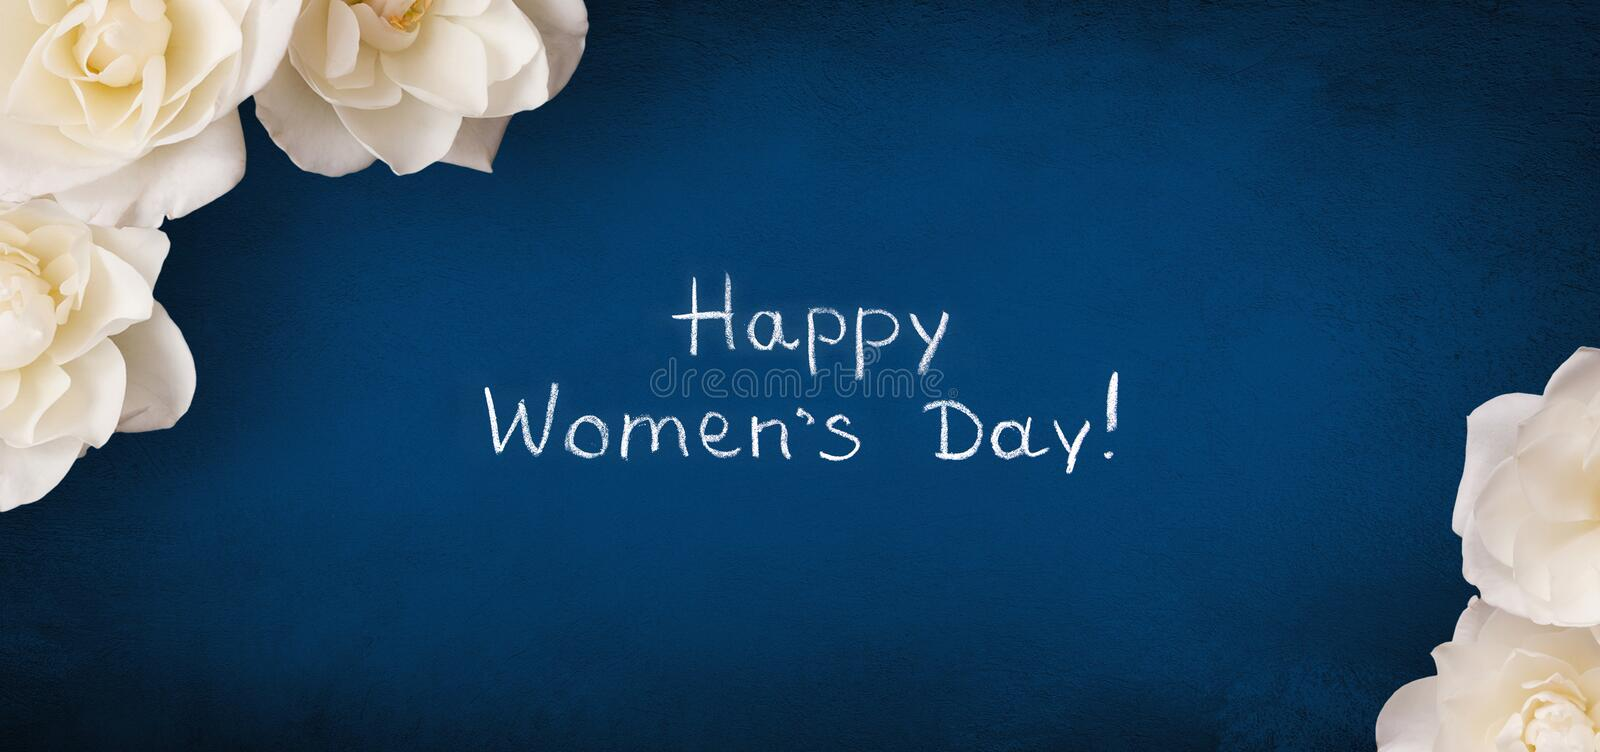 Panoramic greeting card 8 March Happy Women`s Day. Text Happy Women`s Day written by chalk on blue background decorated with white rose flowers. Top view. Flat stock photography